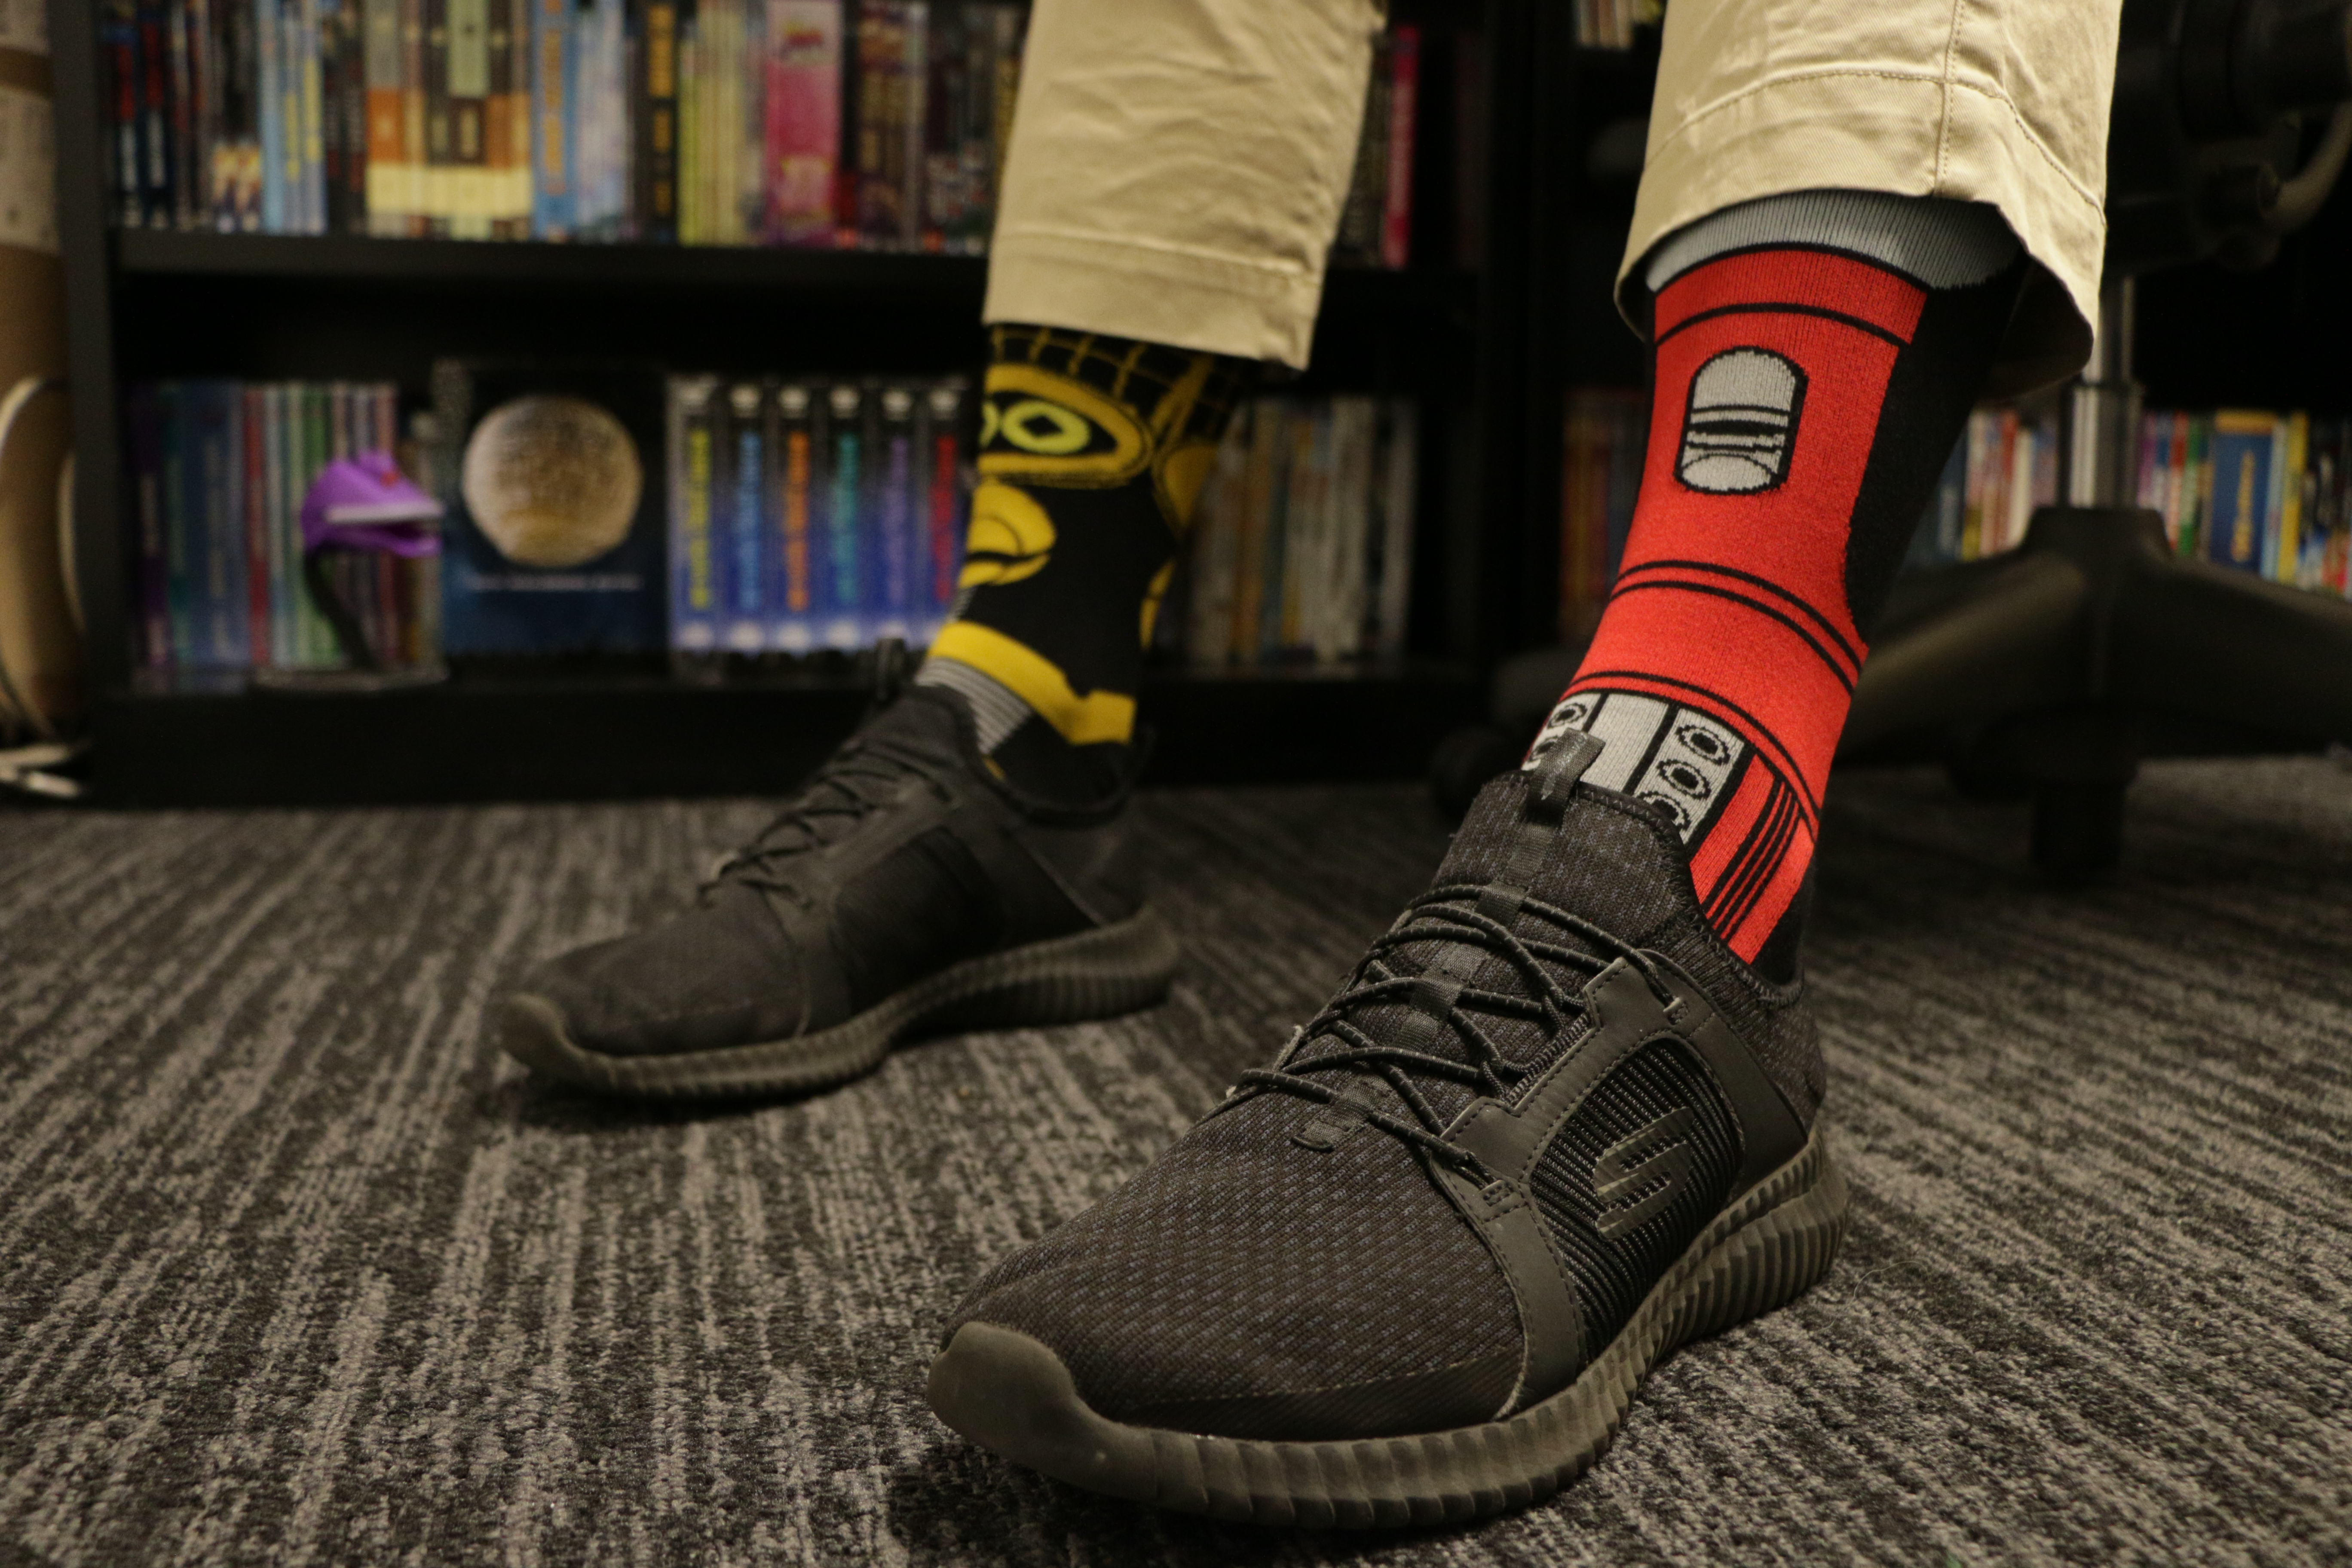 Two Pairs Of MST3K Bot Socks (Tom Servo and Crow T. Robot) main image